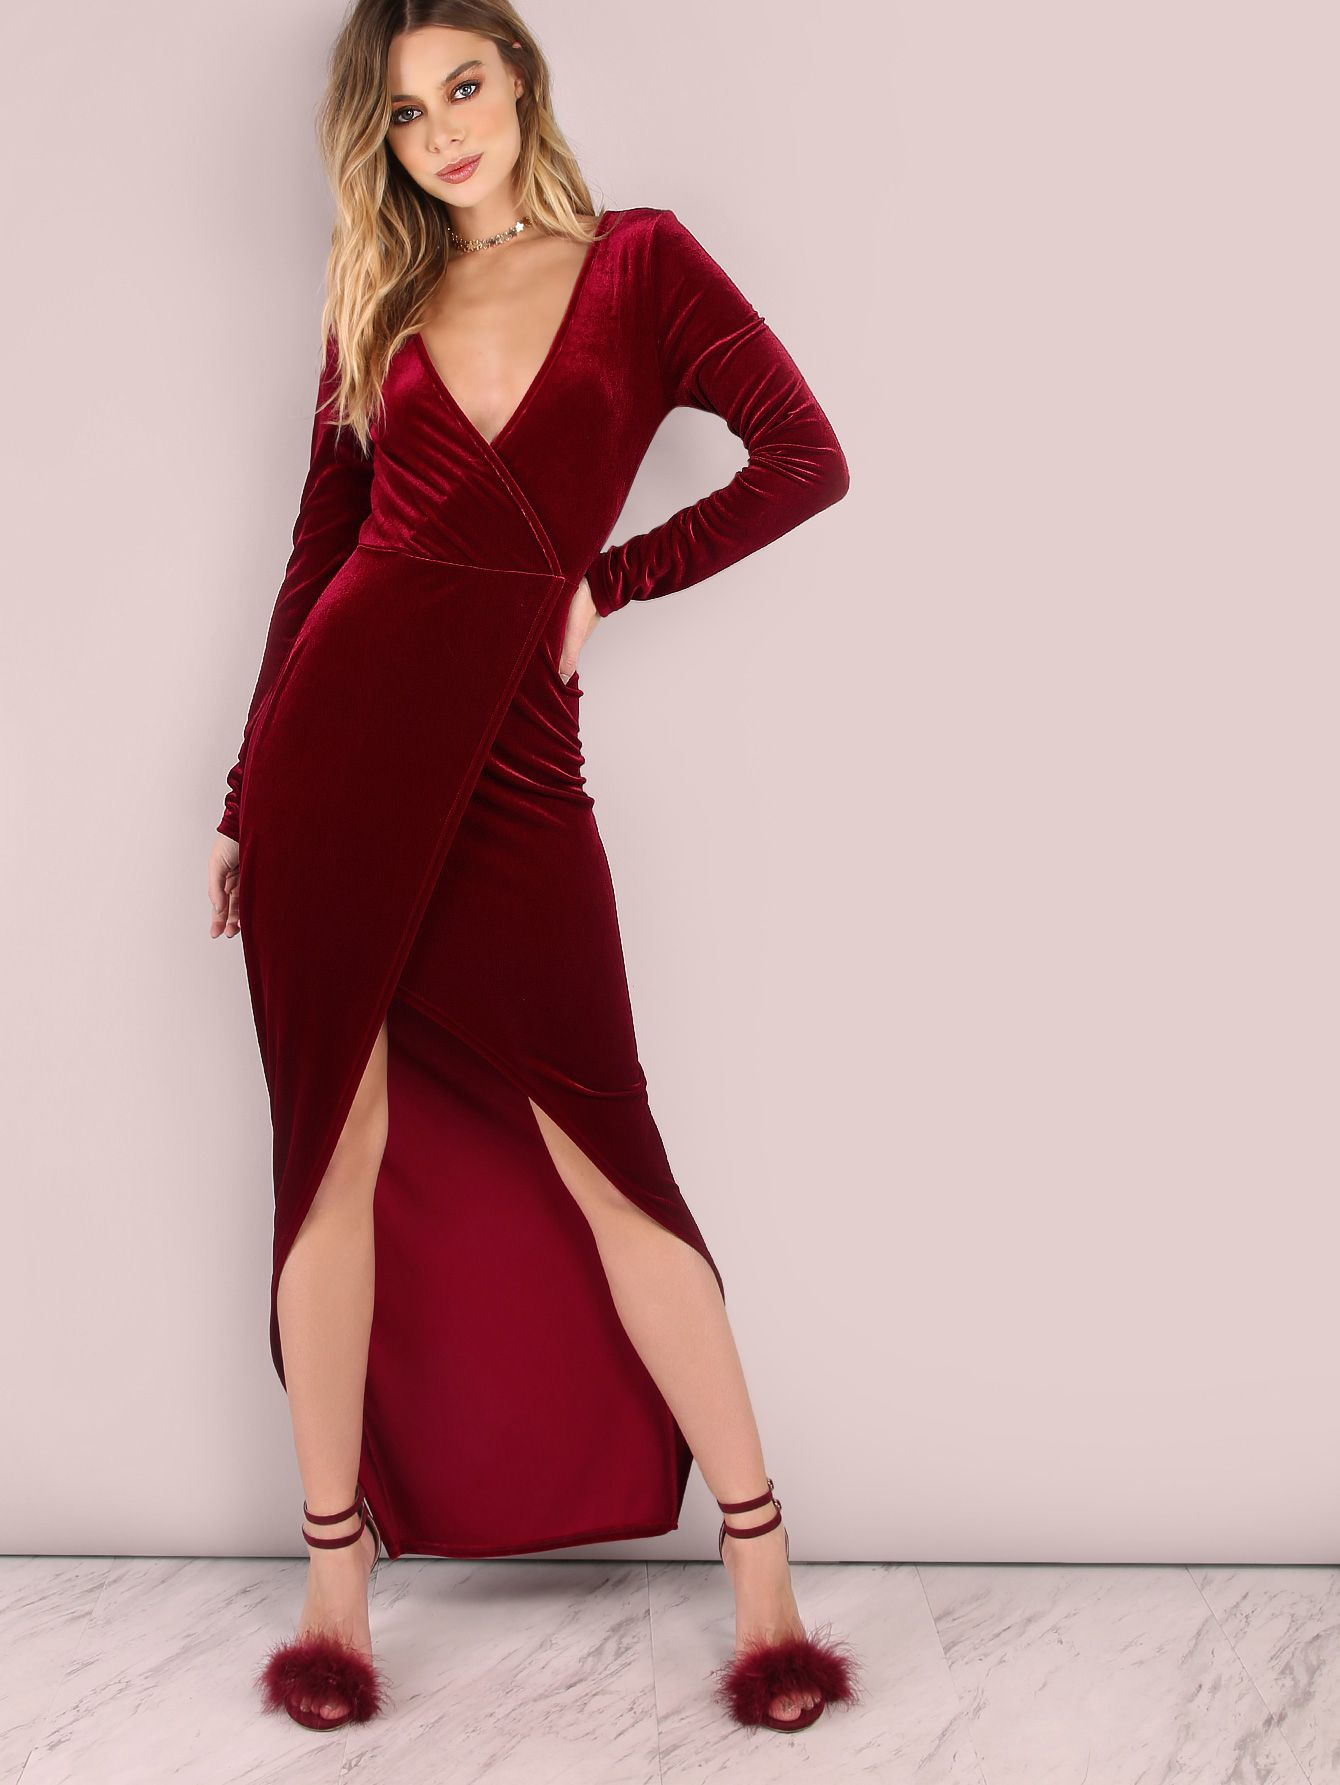 569f6a68d2 Featuring an asymmetrical body with a high/low hemline, long sleeve arms,  slip on fit, deep v-neckline and smooth velvet material. Dress measures ...